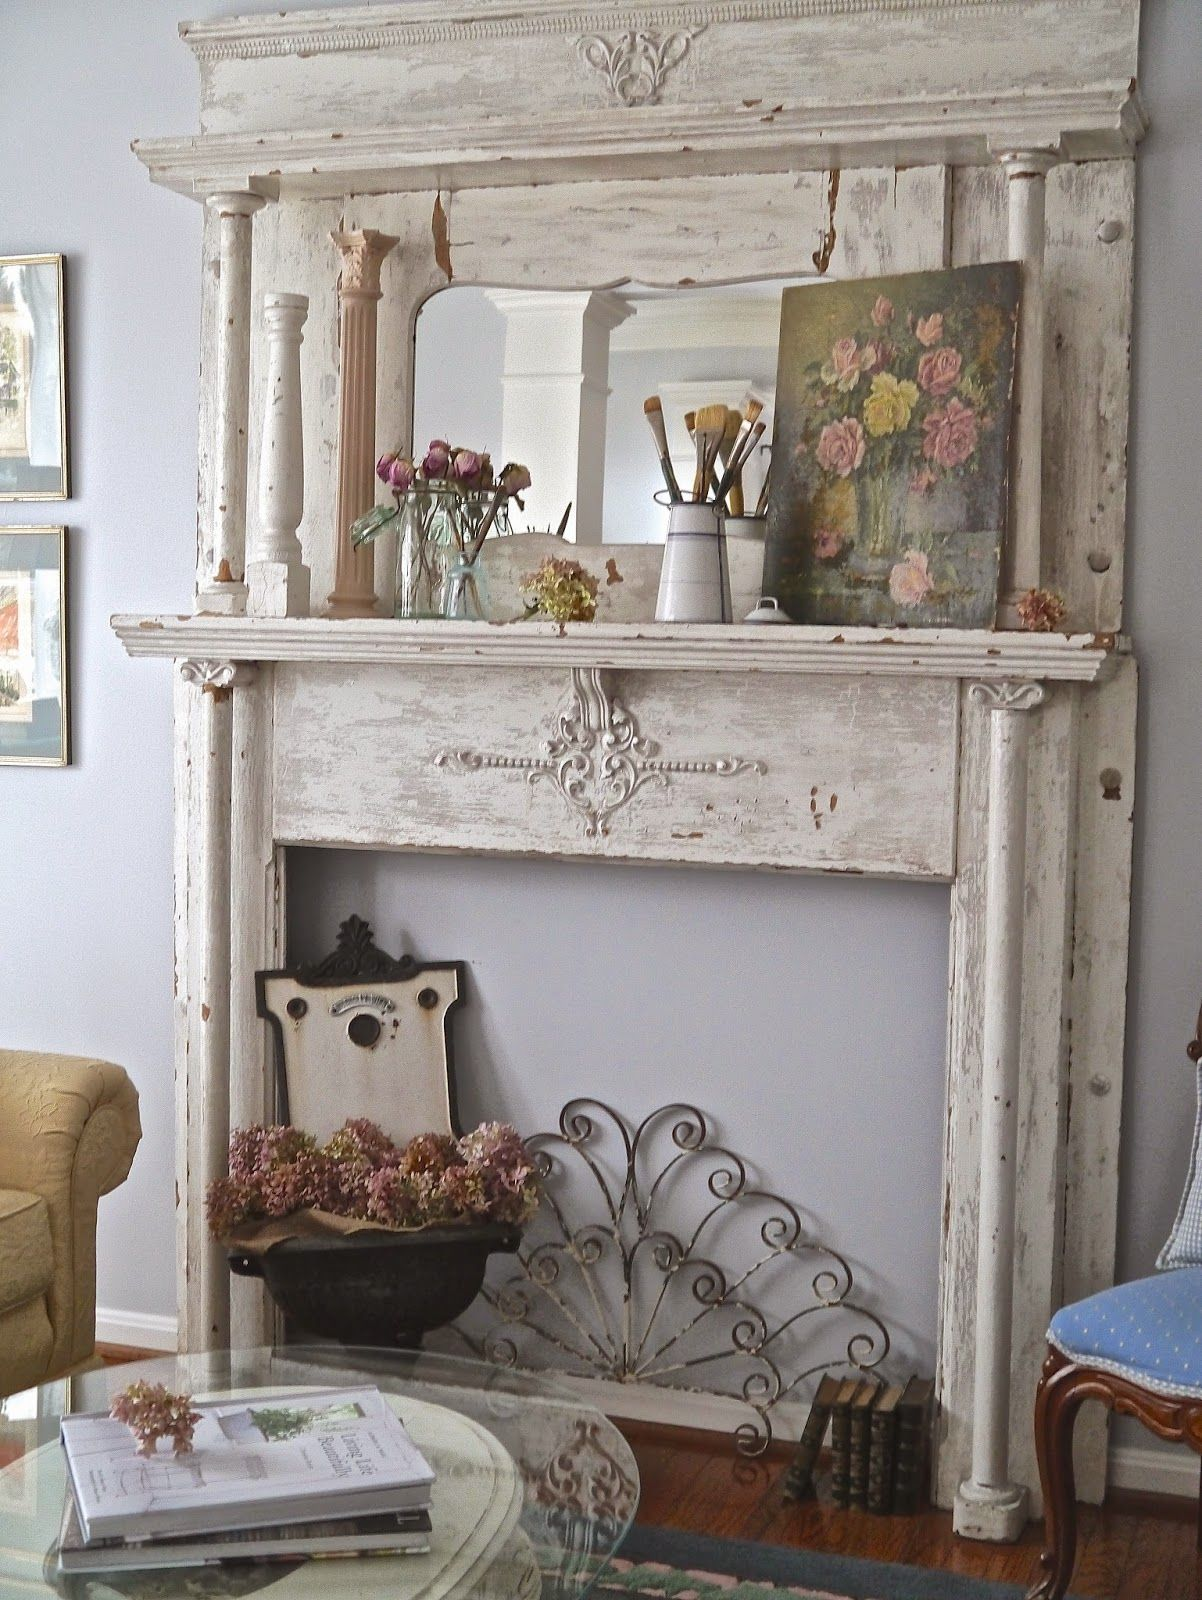 Chateau Chic A New Find Inspires Change On The Mantel